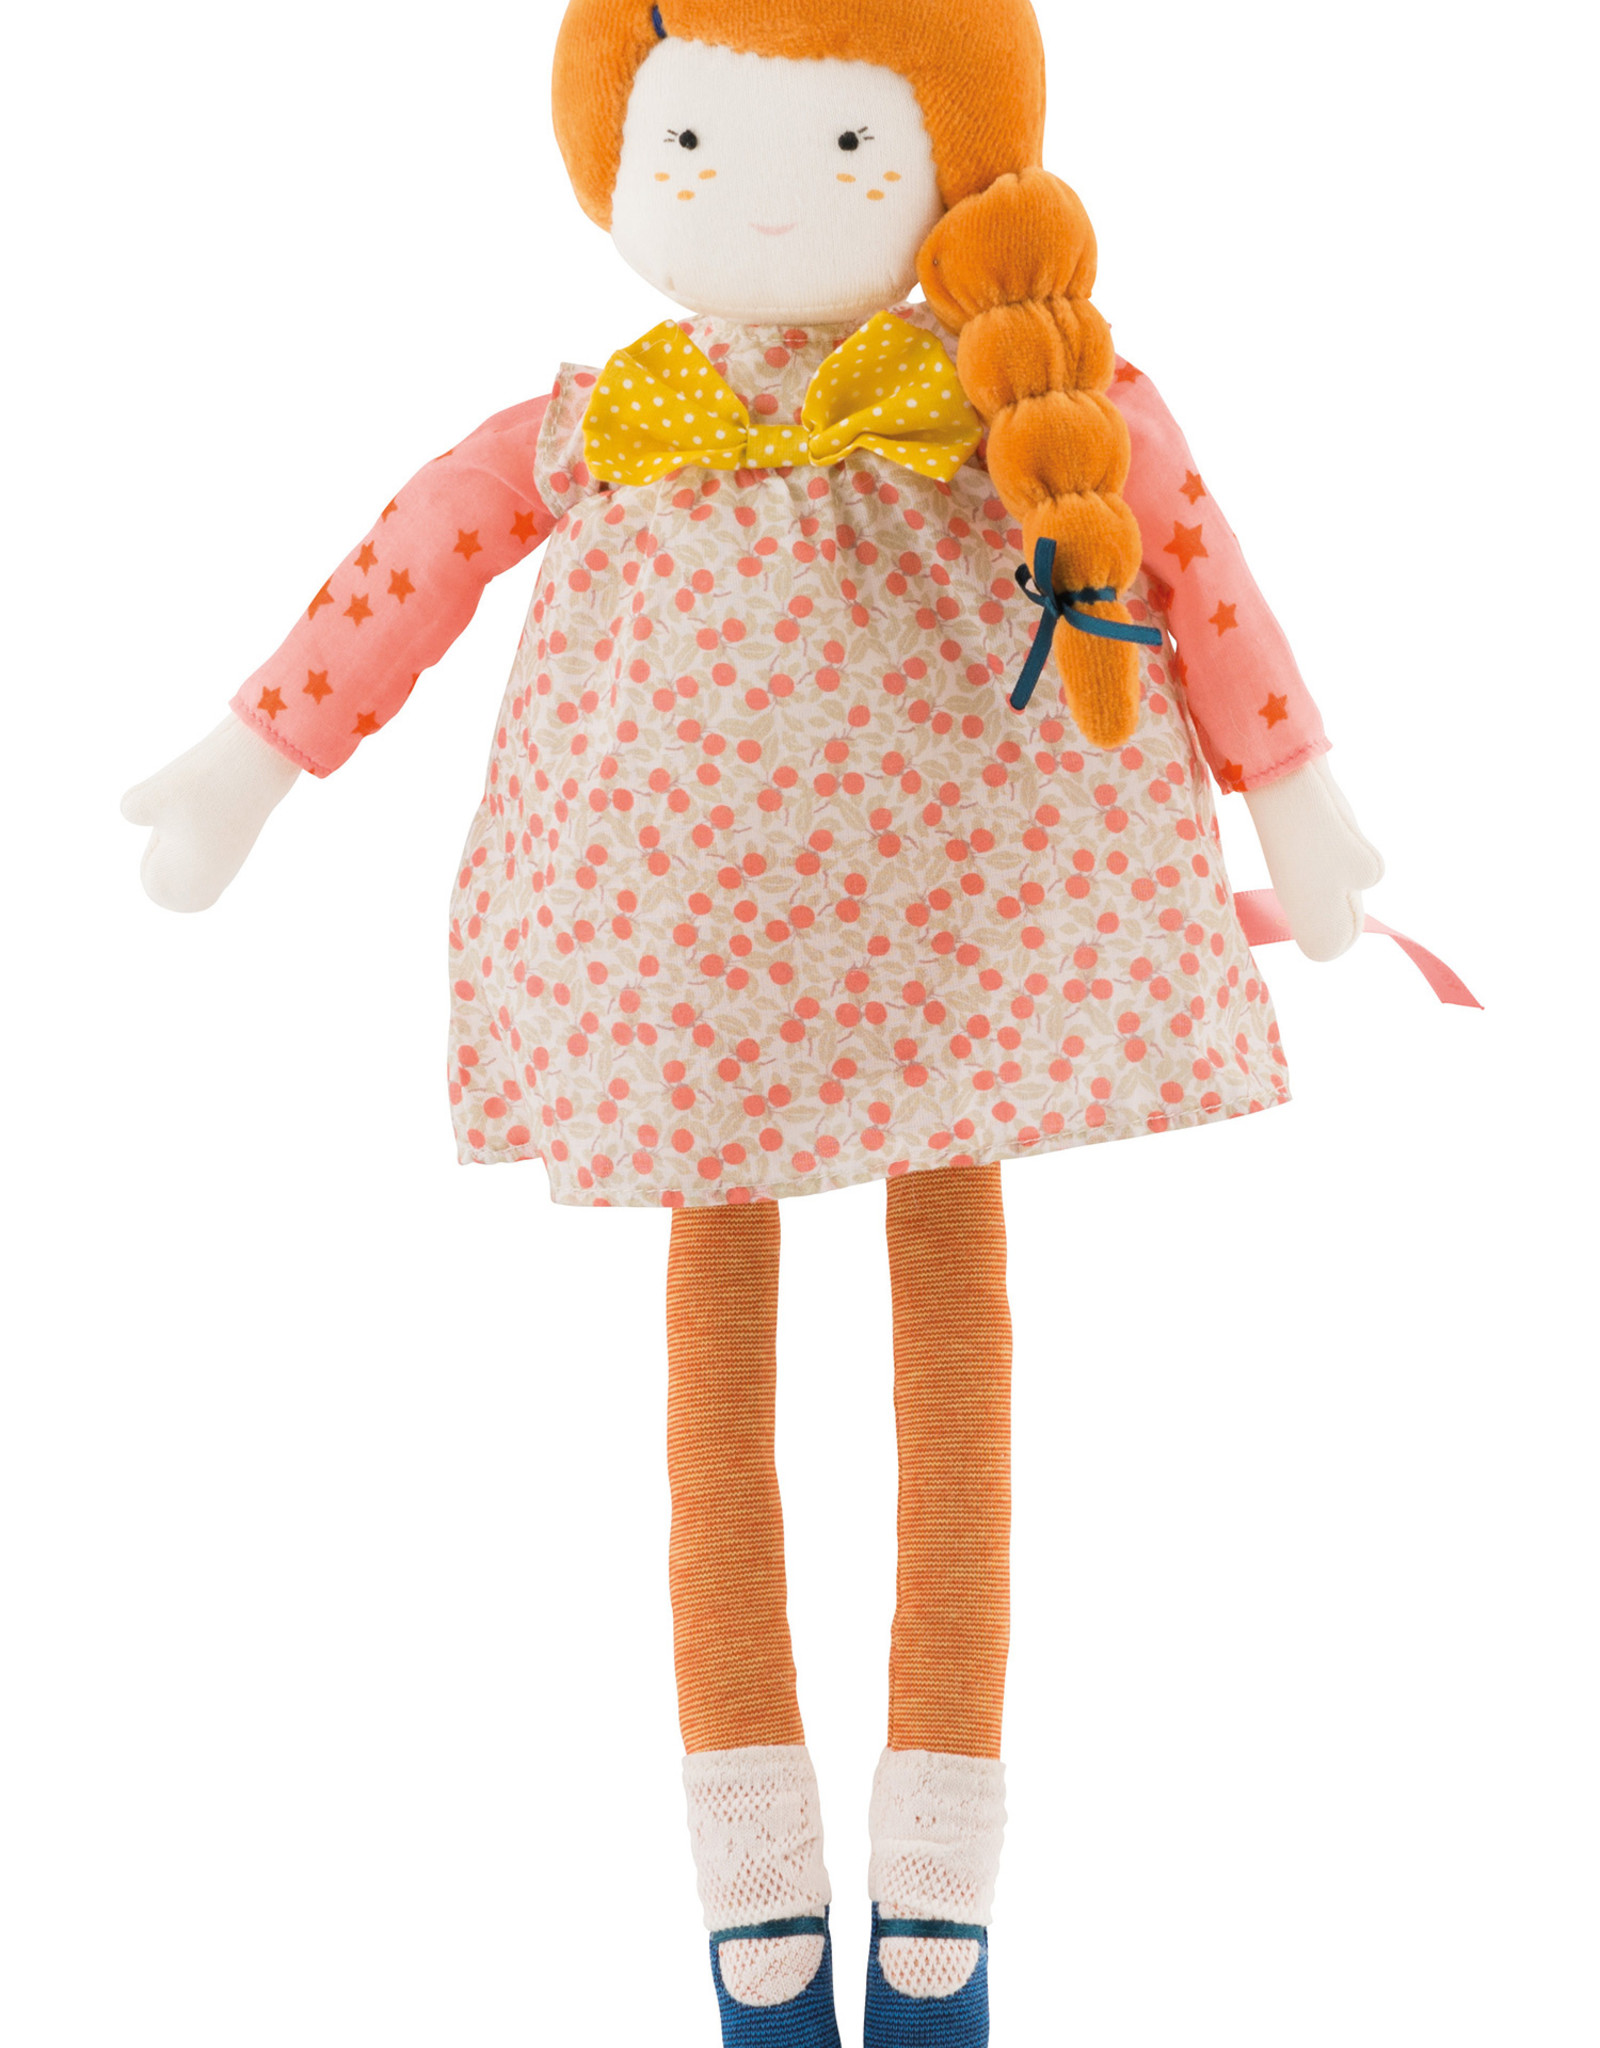 Moulin Roty Mademoiselle Colette doll - Les Parisiennes